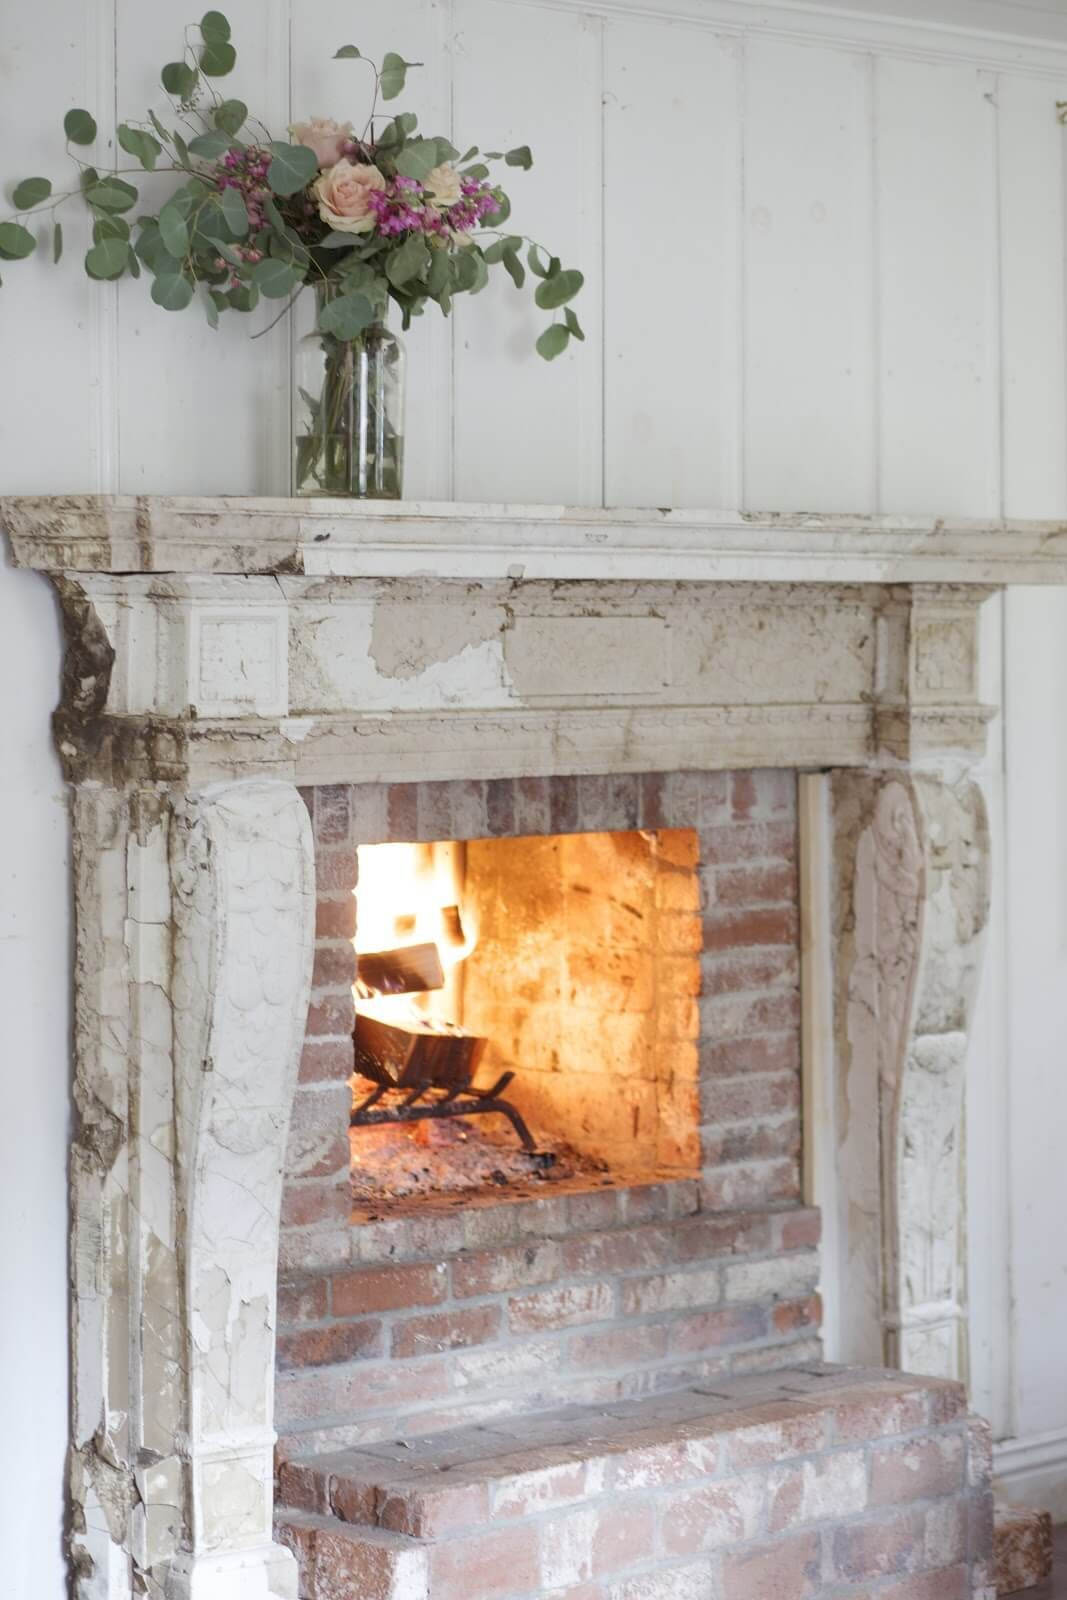 French Country Fireplace Distressed Wood Burning Fireplace With Flowers Stuff I M Lovin